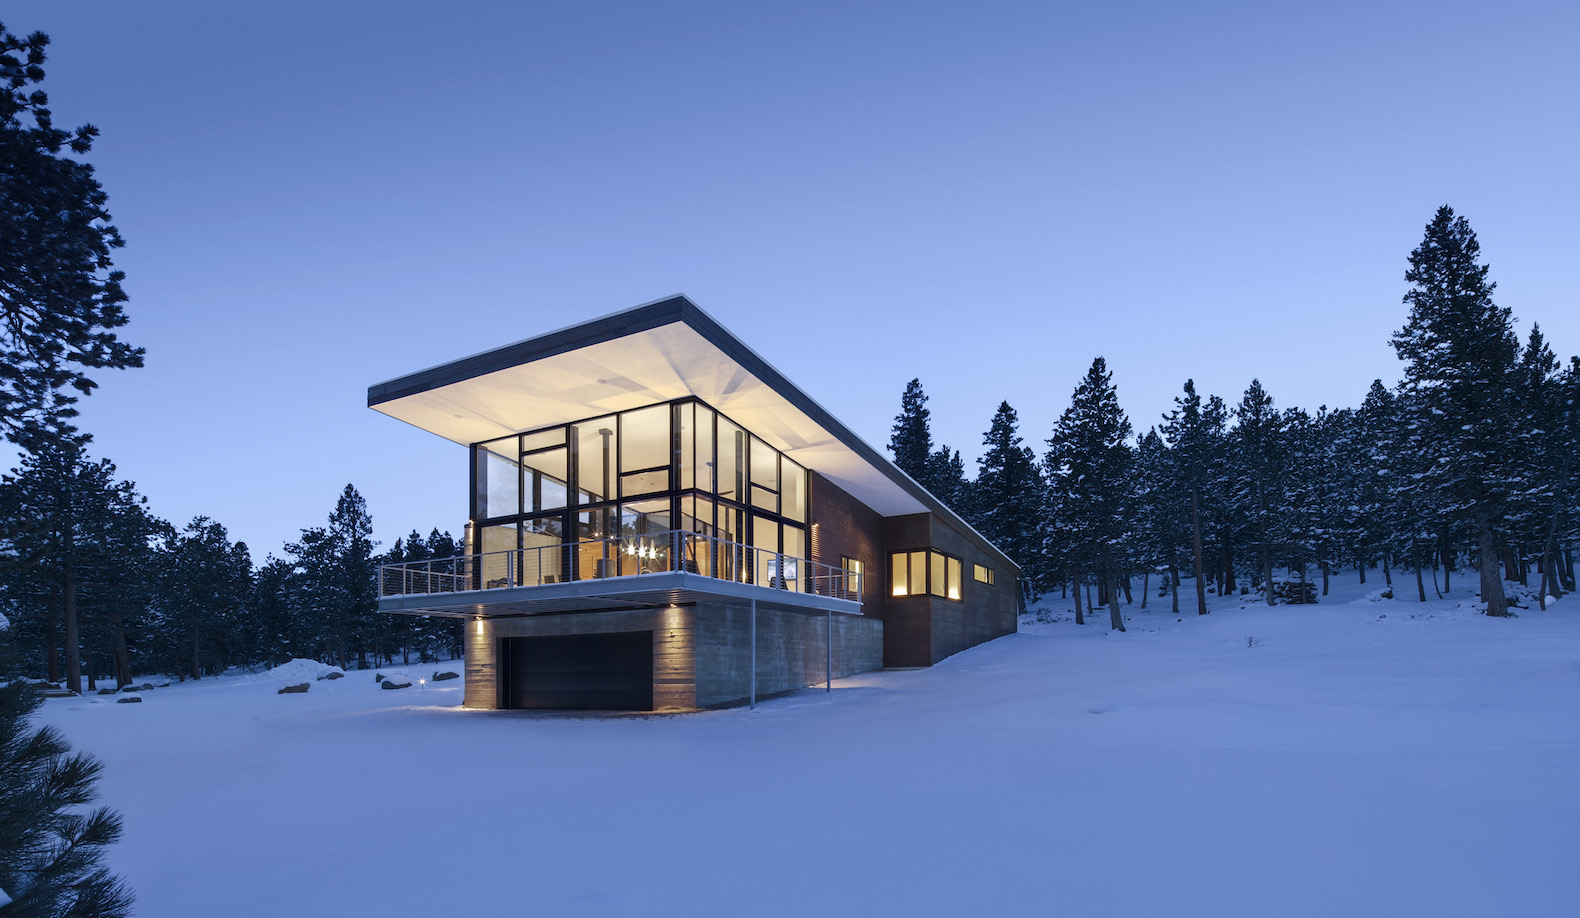 Modern lodge in the Rocky Mountains produces as much energy as it consumes